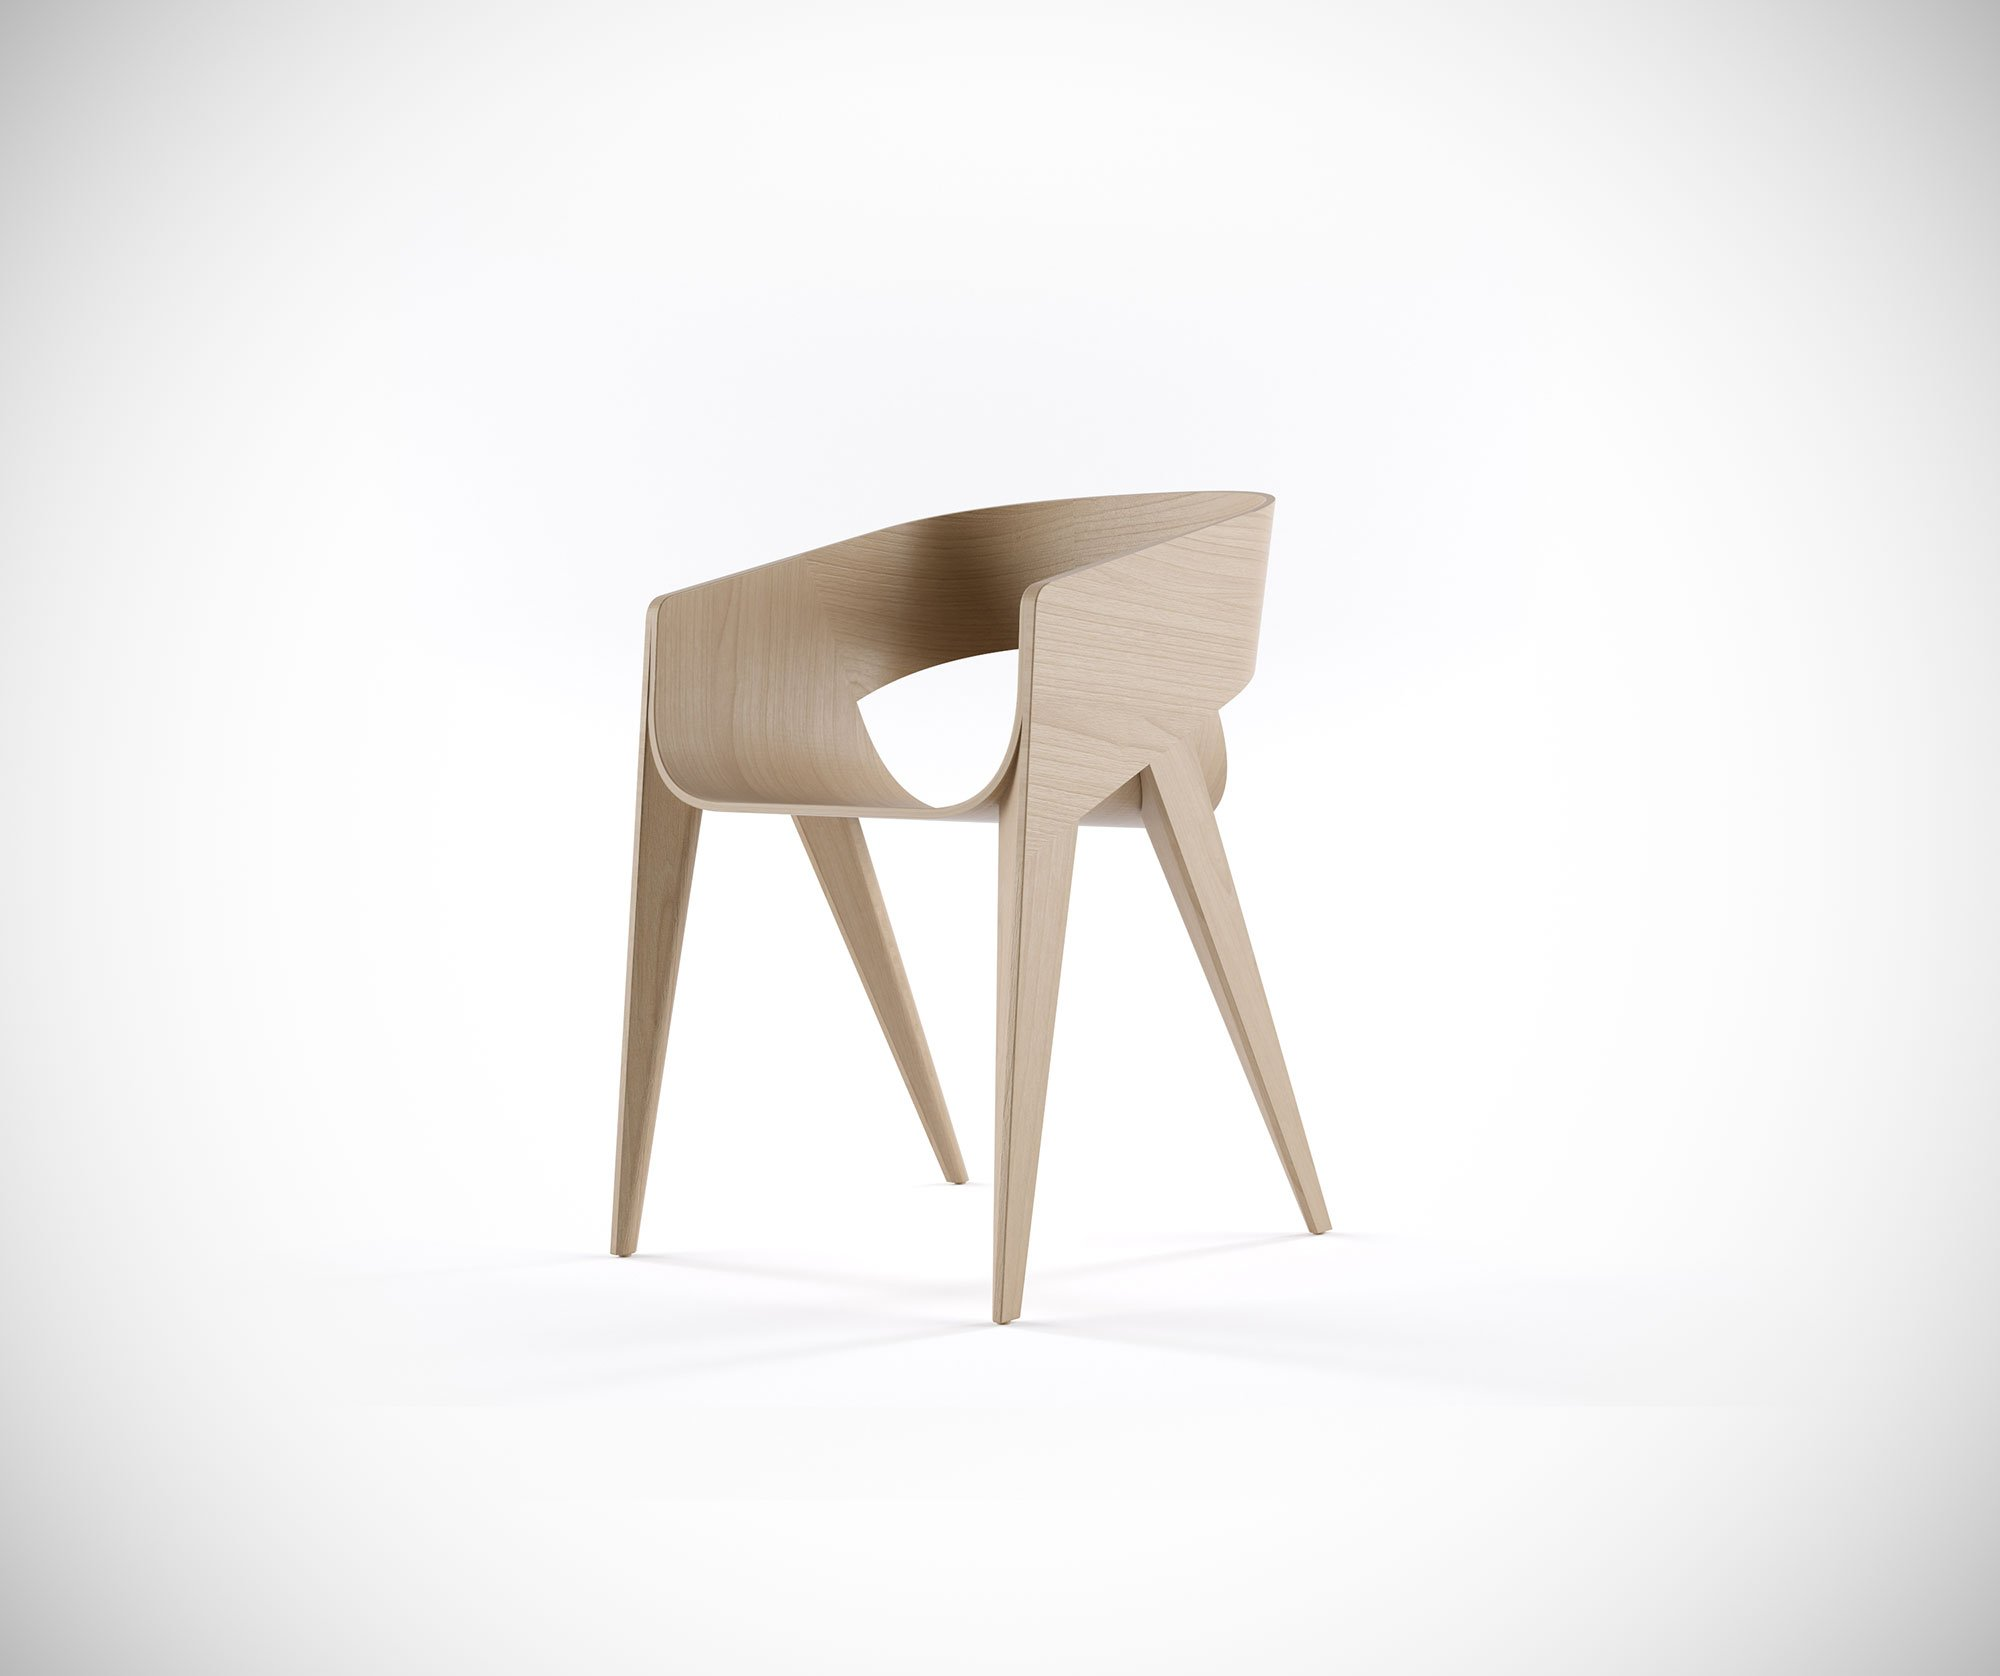 The Ergonomic Shape Ensures More Comfort, While Also Giving The Chair A  Graceful Silhouette. The Solid Wood Feet Support The Plywood Structure, ...